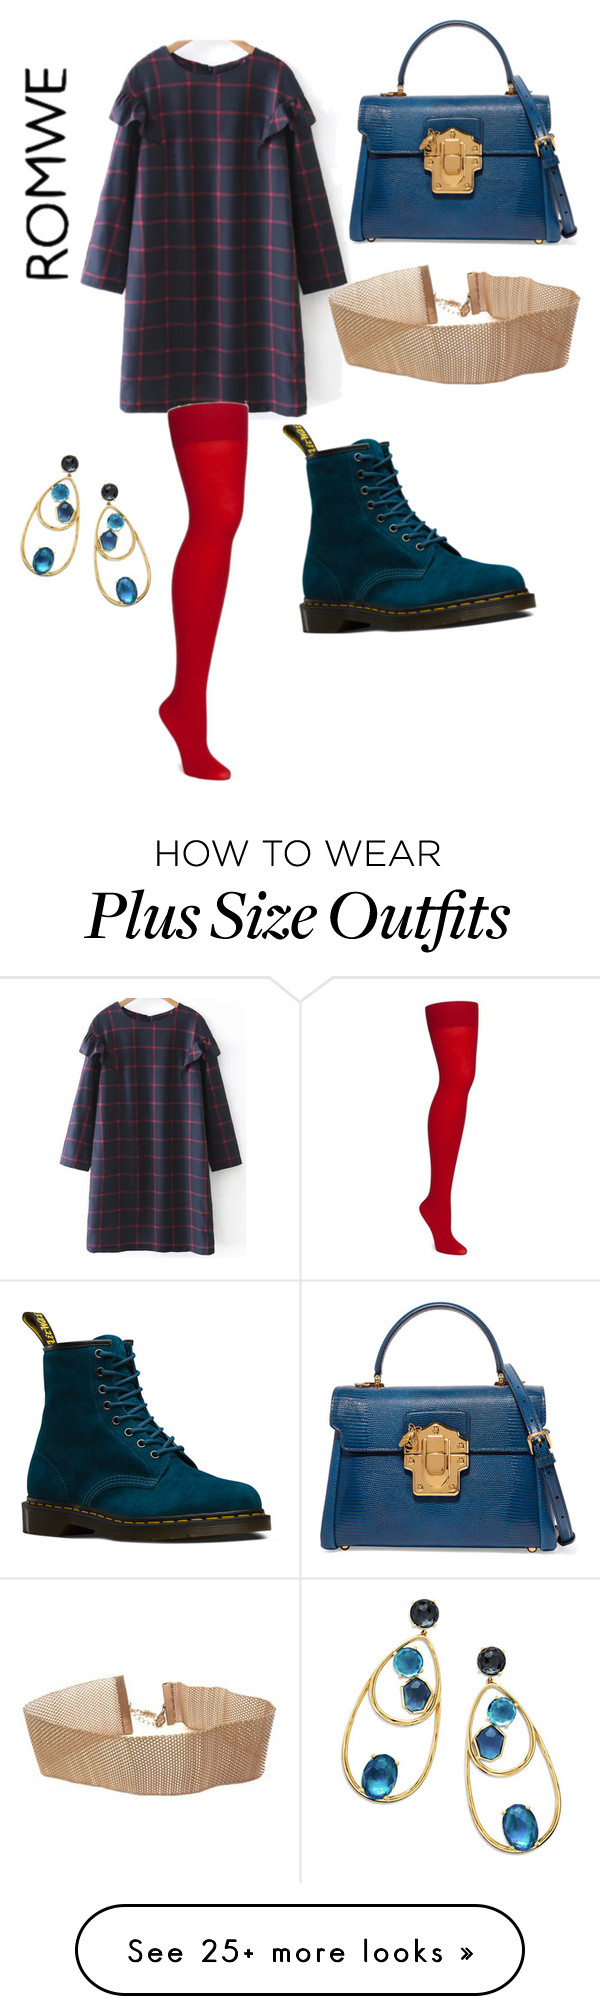 """""""Shift Dress"""" by rmauschenfangs on Polyvore featuring Dr. Martens, Dolce&Gabbana and Ippolita"""